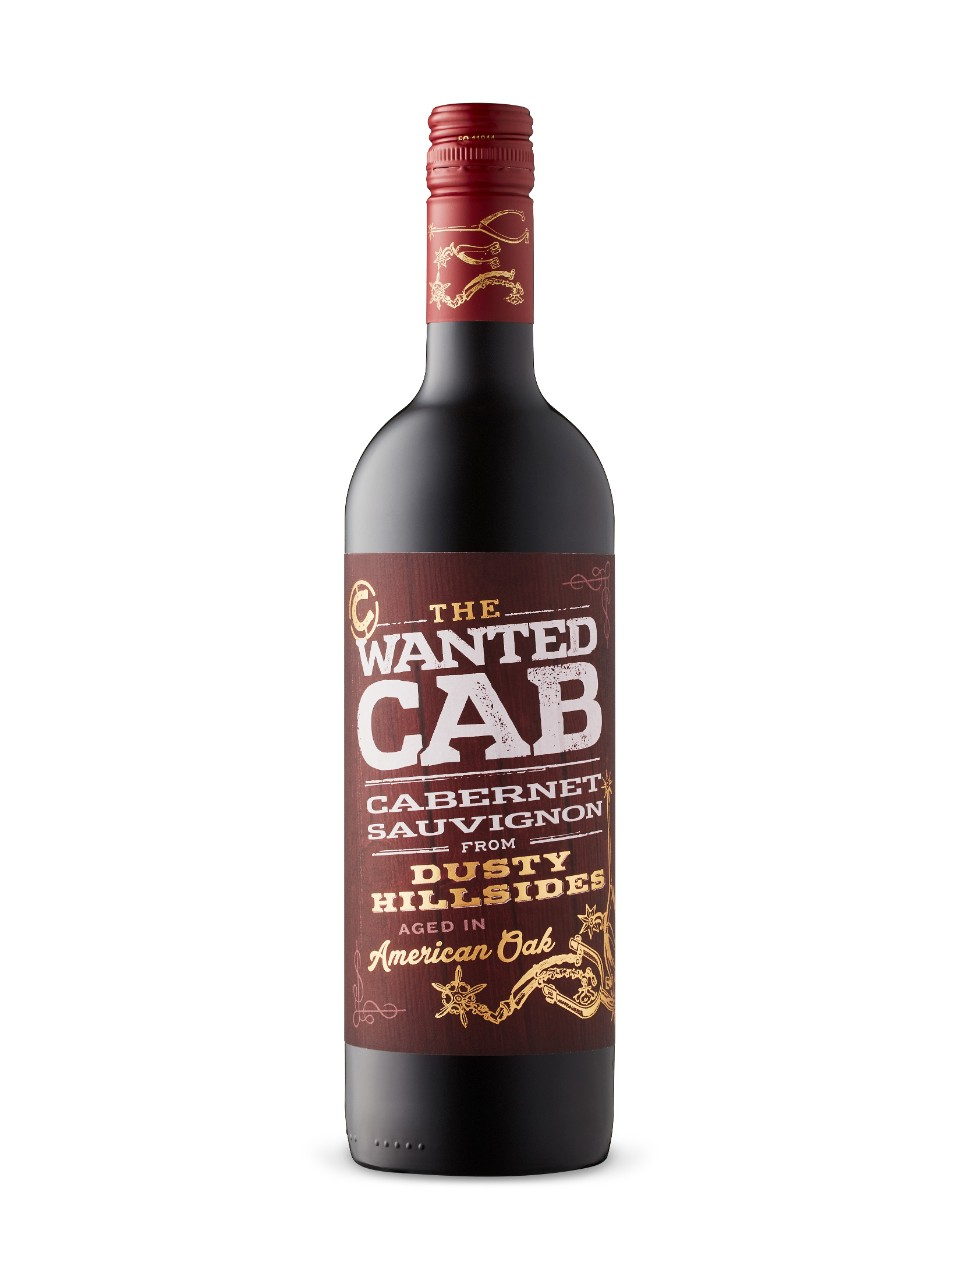 Cabernet Sauvignon The Wanted Cab Vd'Italia